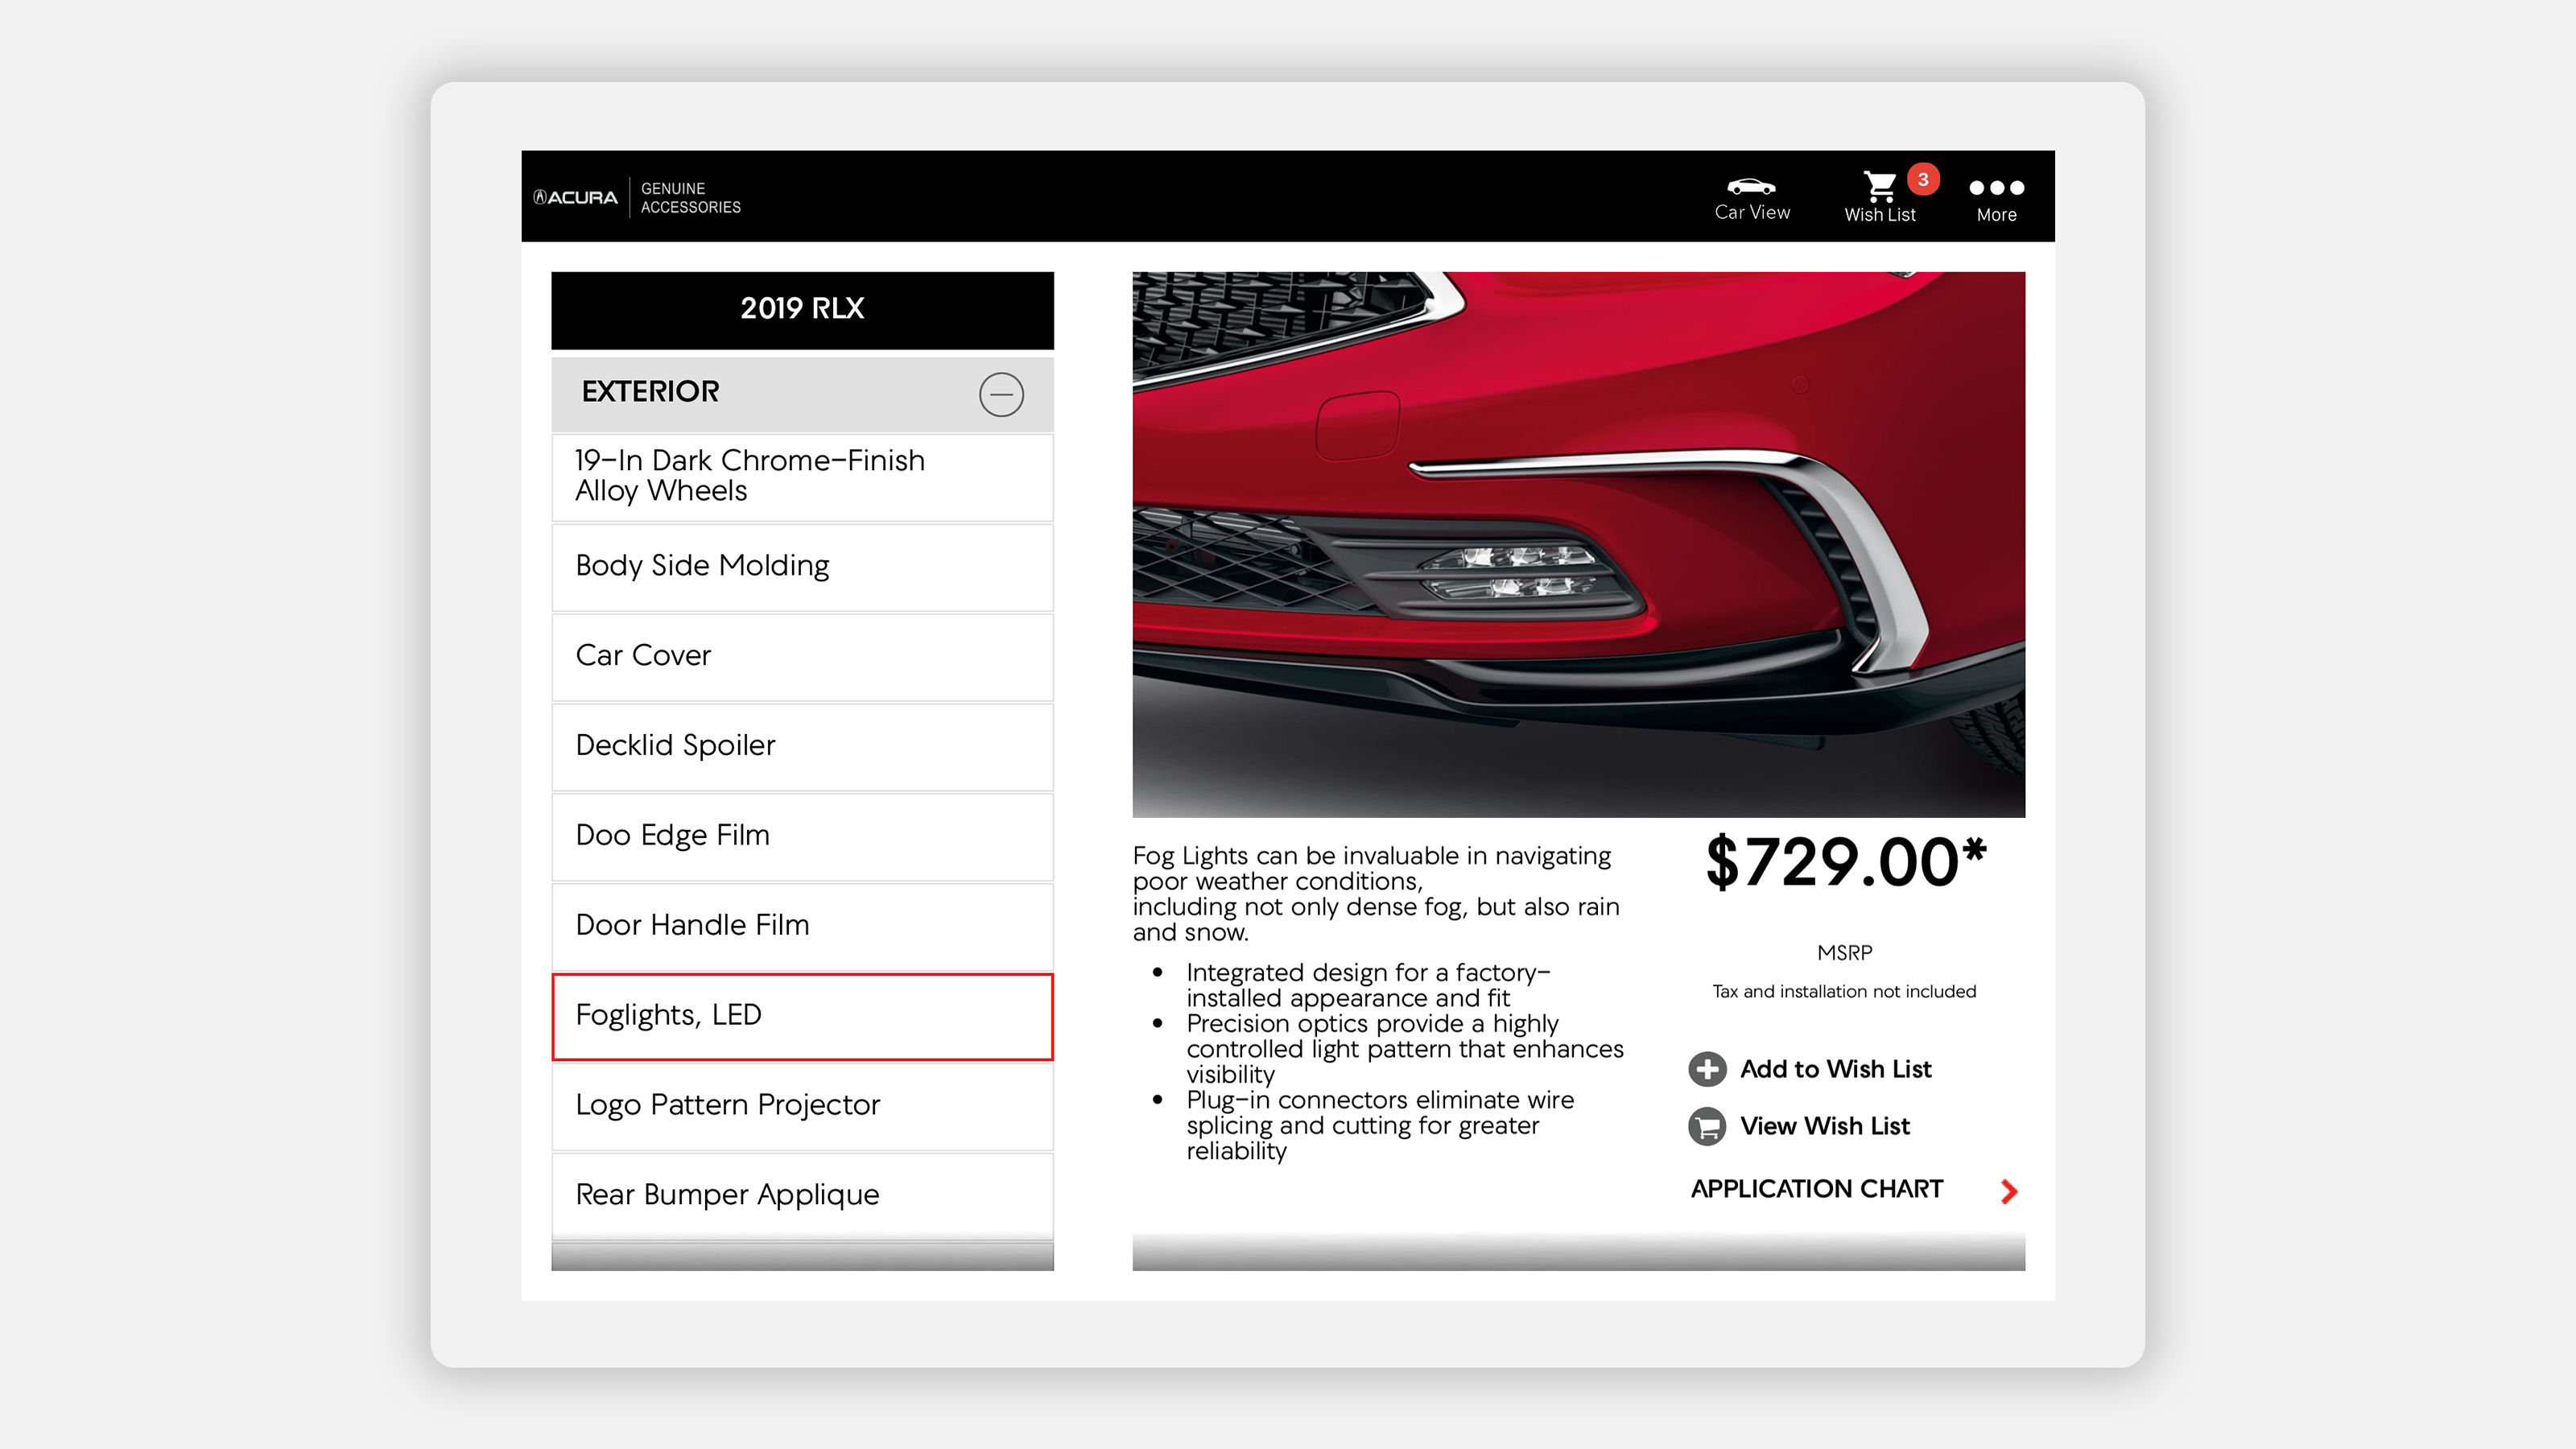 acura accessories app on tablet - red 2019 RLX with additional features and accessories